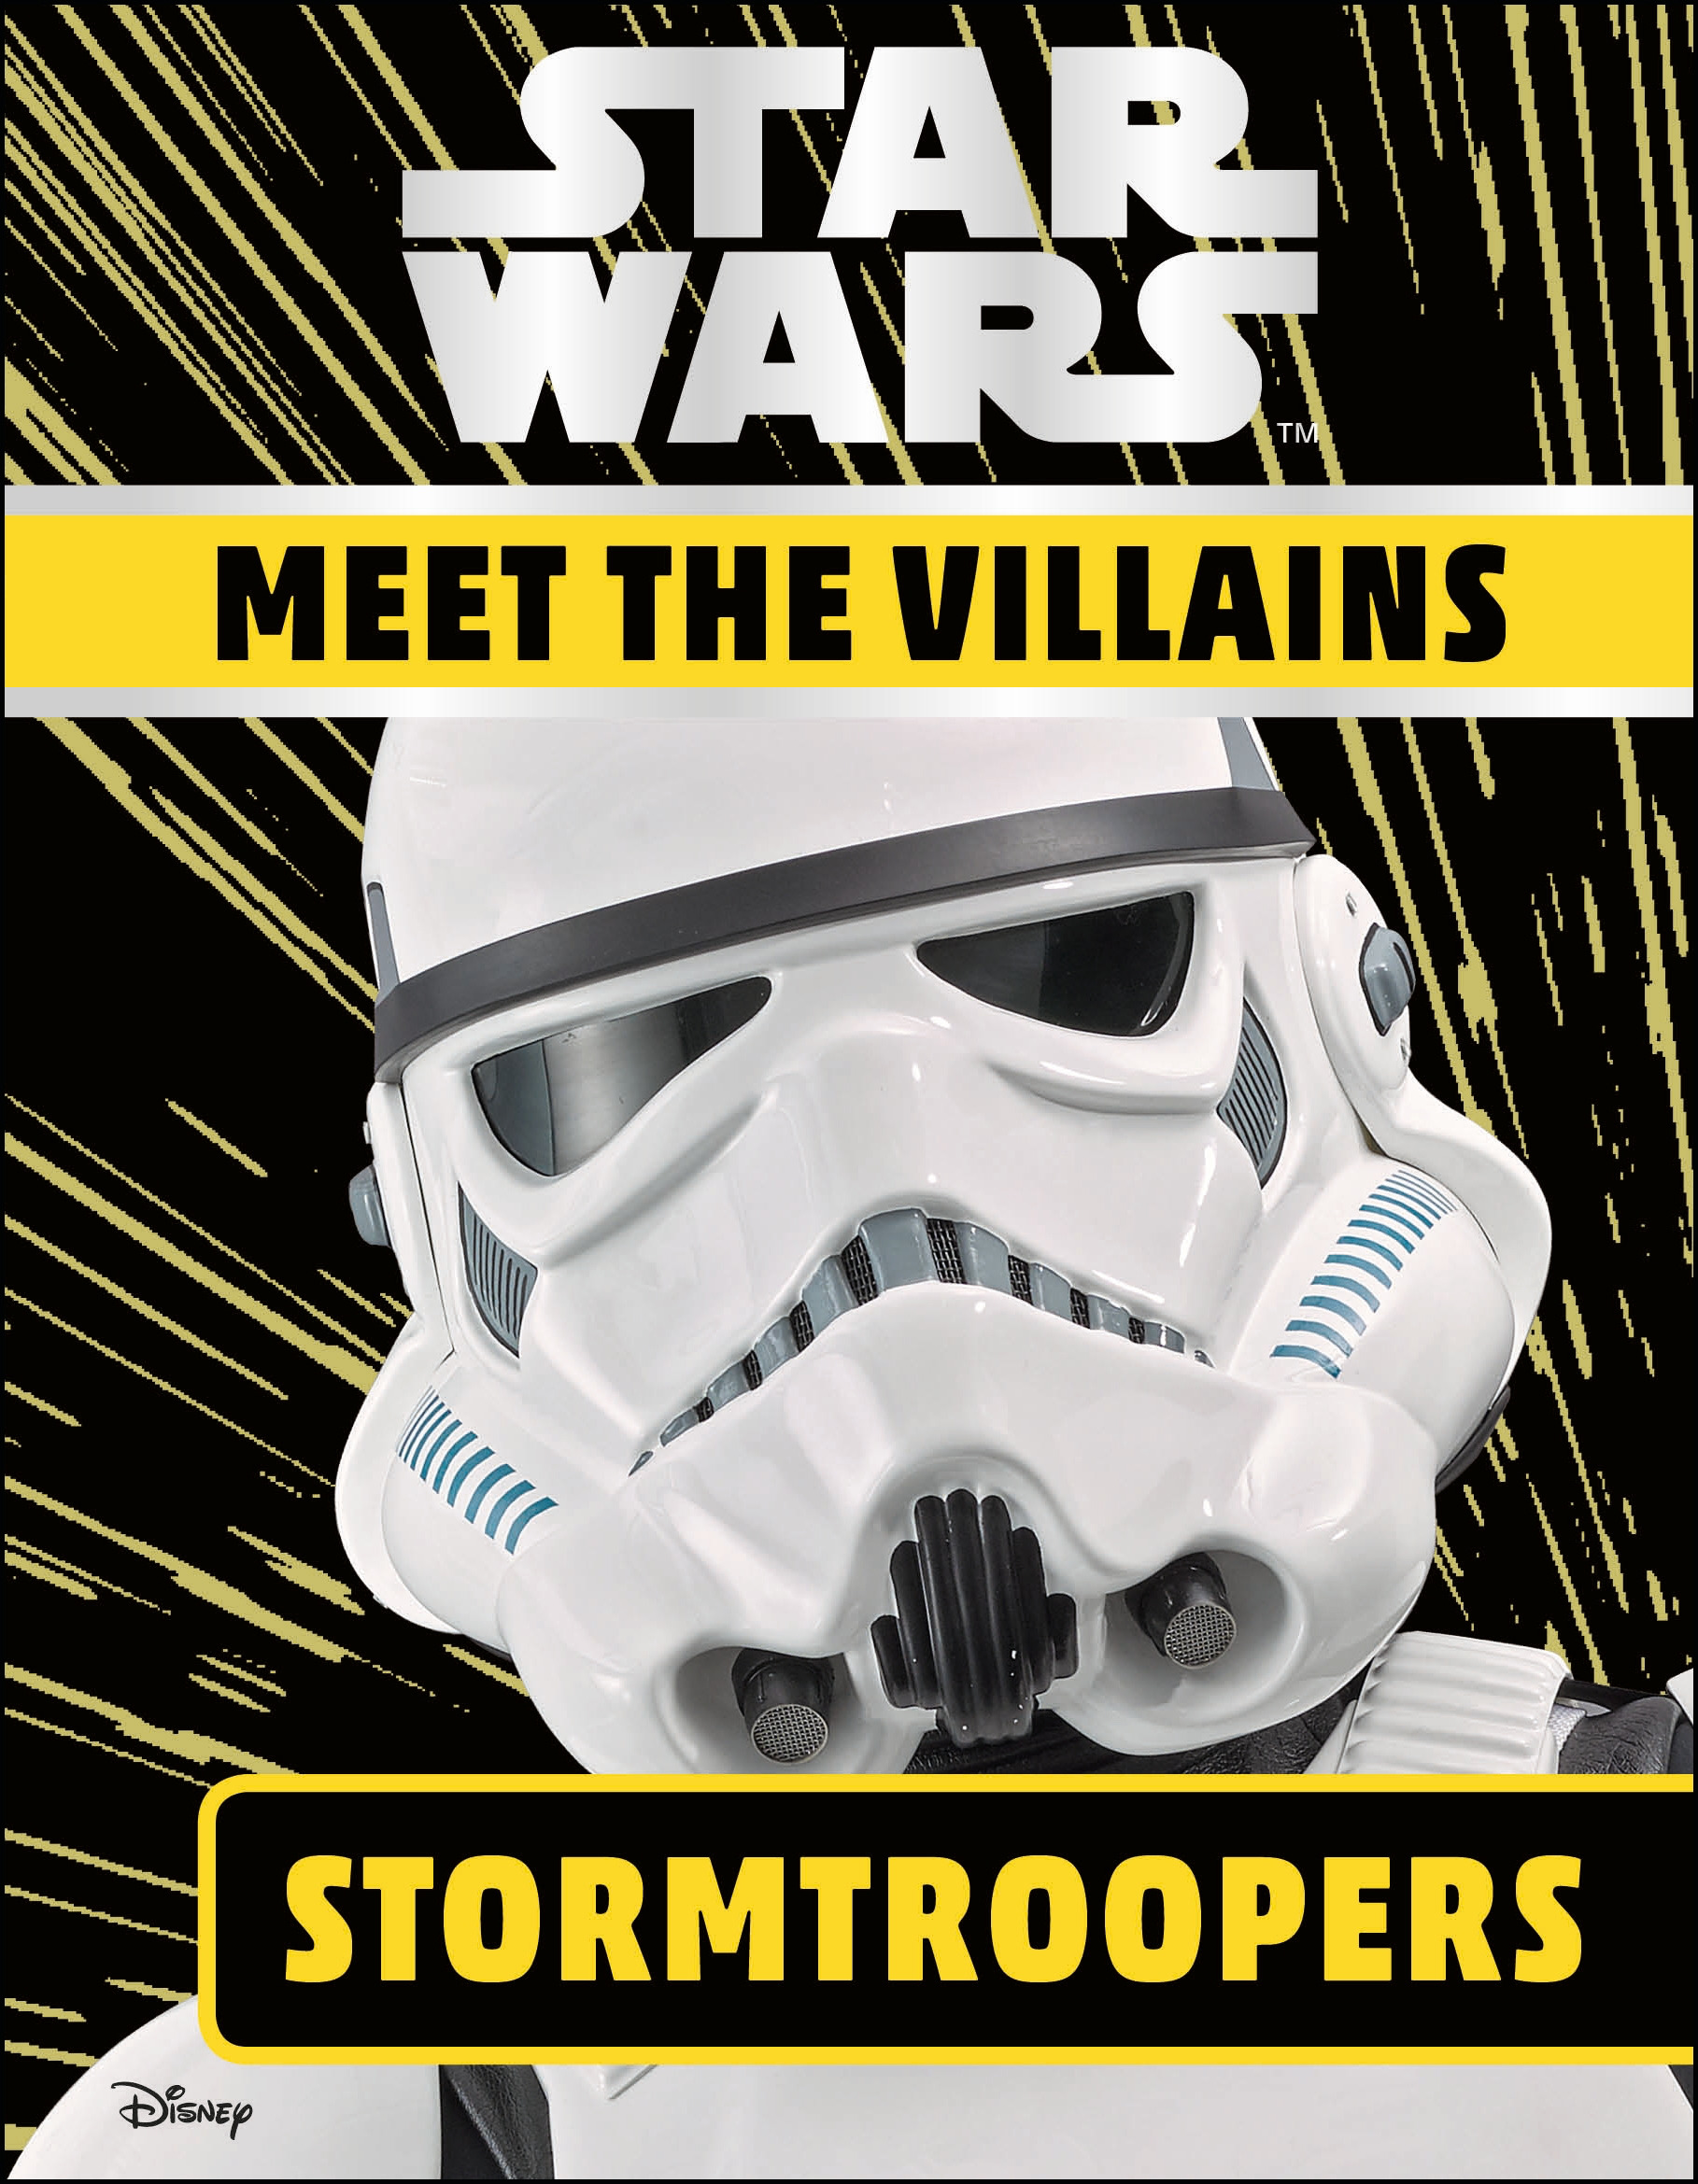 Meet the Villains: Stormtroopers (03.09.2019)